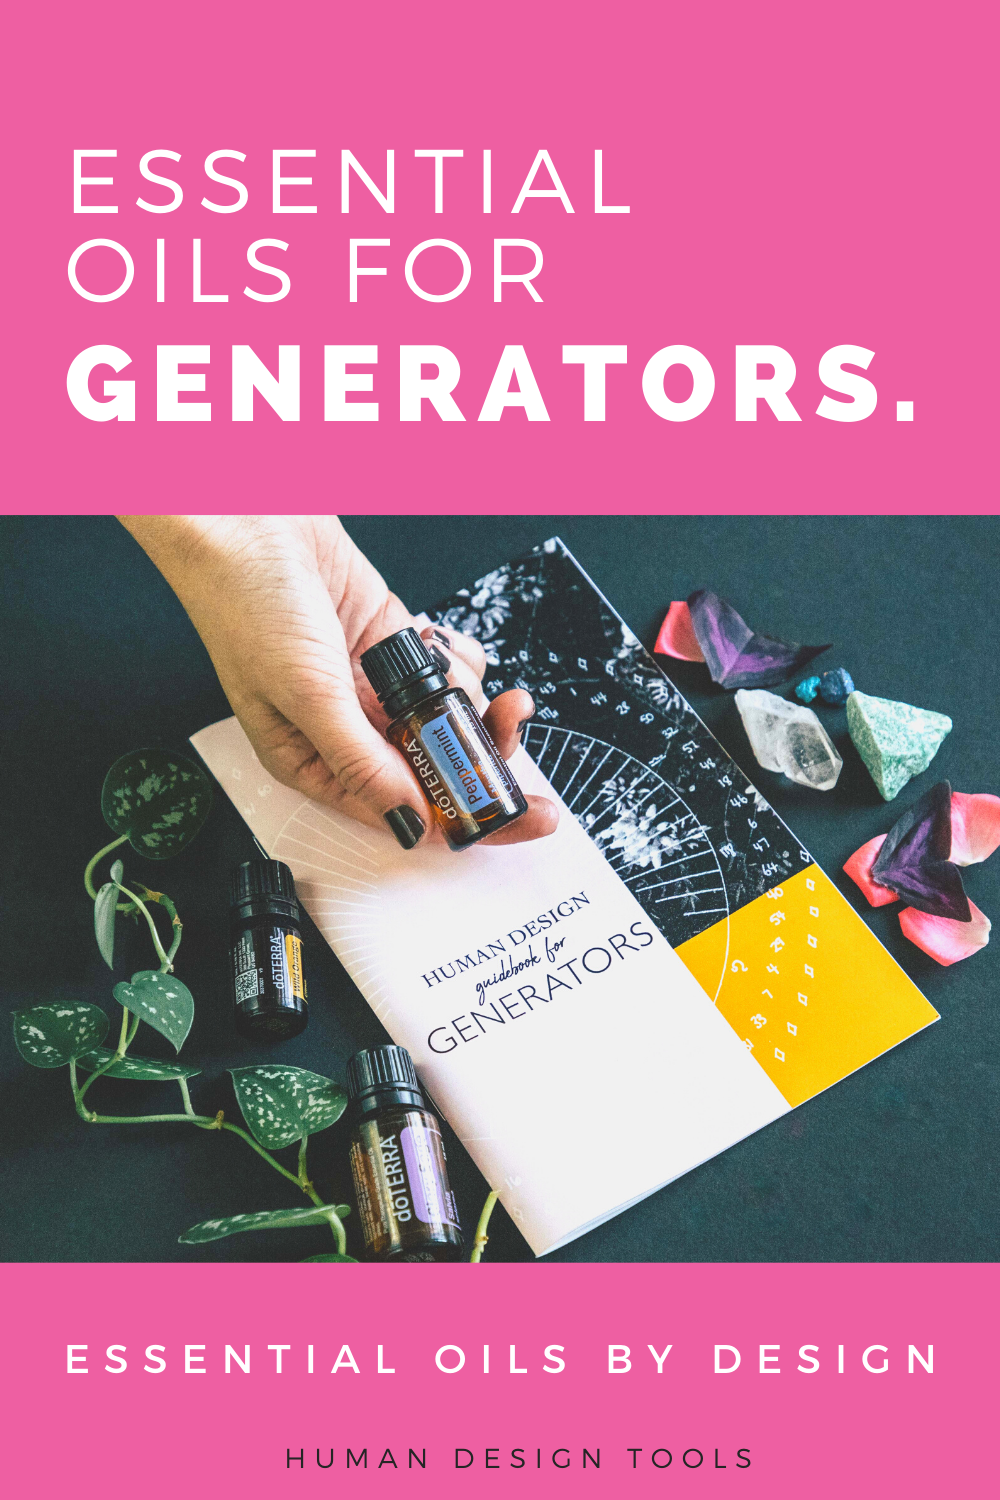 Essential Oils by Design for Generators